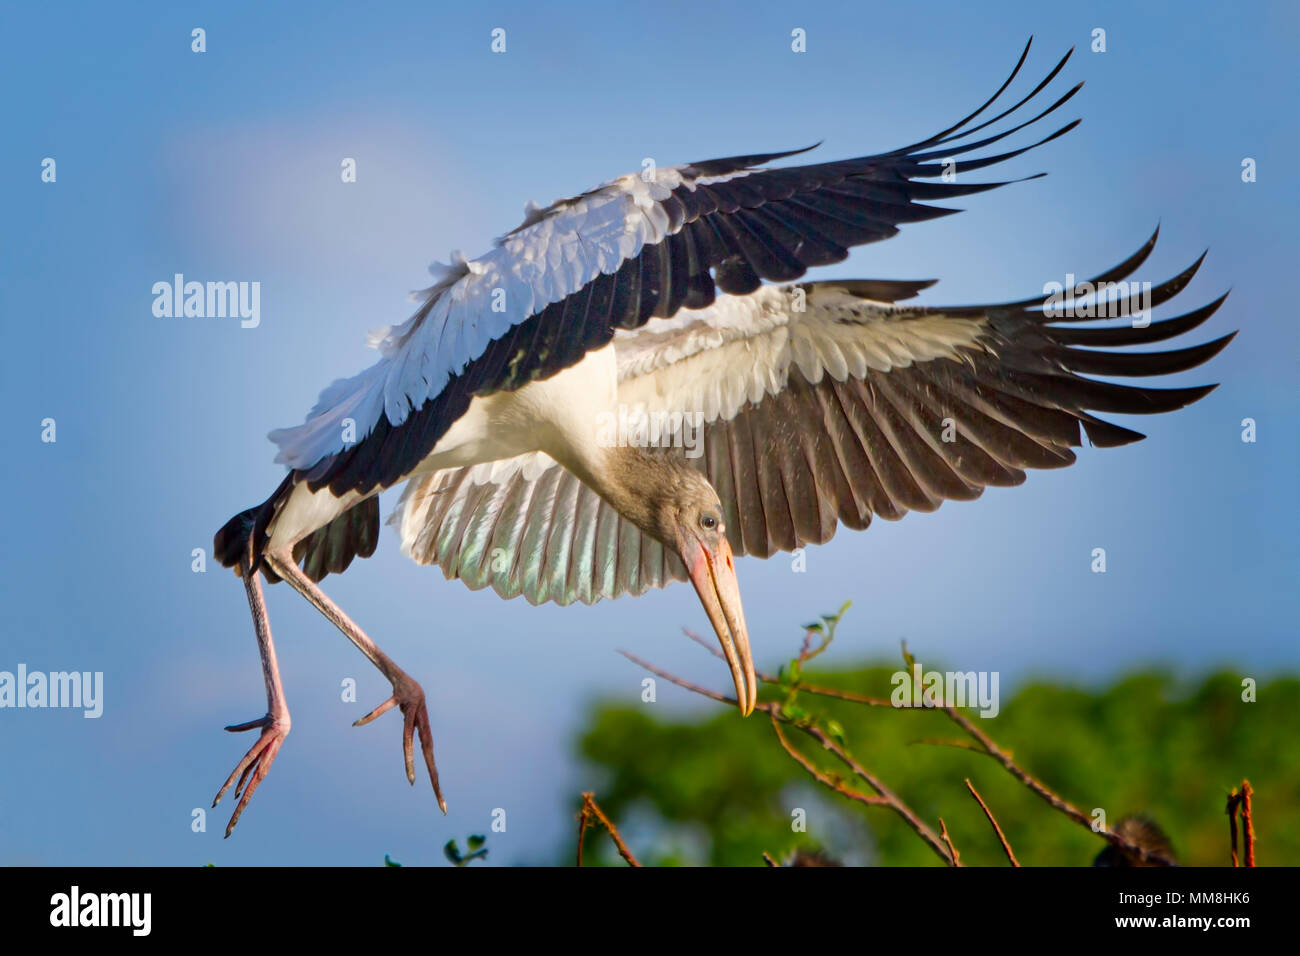 A young Wood Stork comes in for a picture perfect landing in the Florida Everglades. - Stock Image